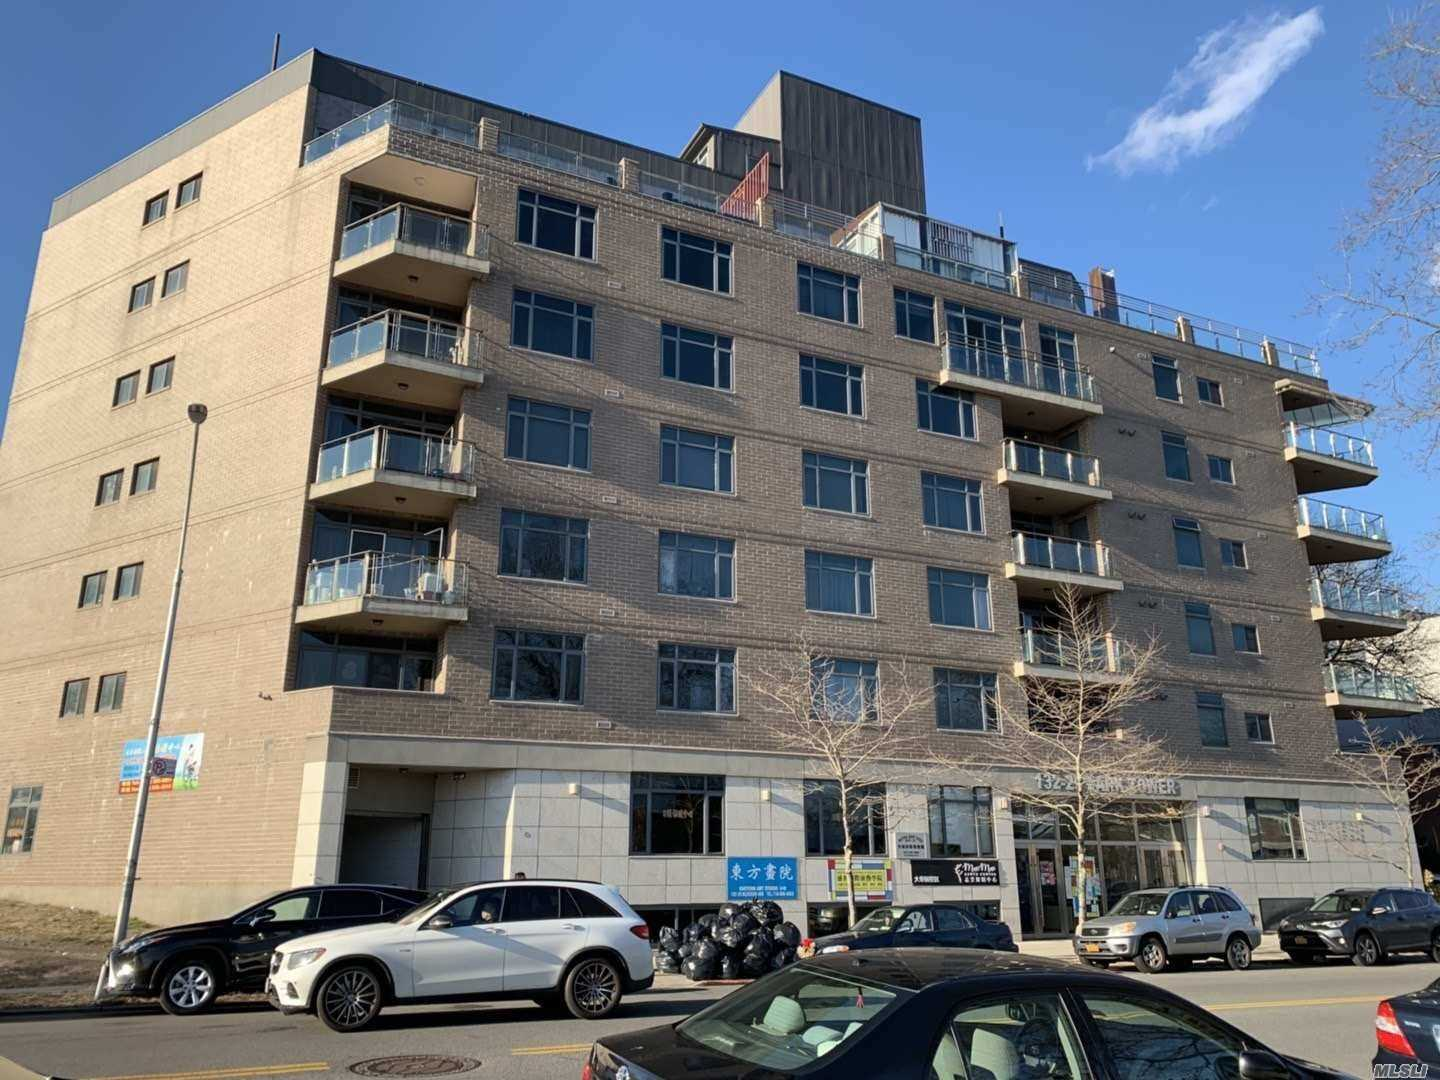 Diamond Condition, Face to South, Corner Unit, 2 Balconies. 5 Min. Walk Distance to Main St. Flushing. Nice View of Queens Botanical Garden. Must To See!!!